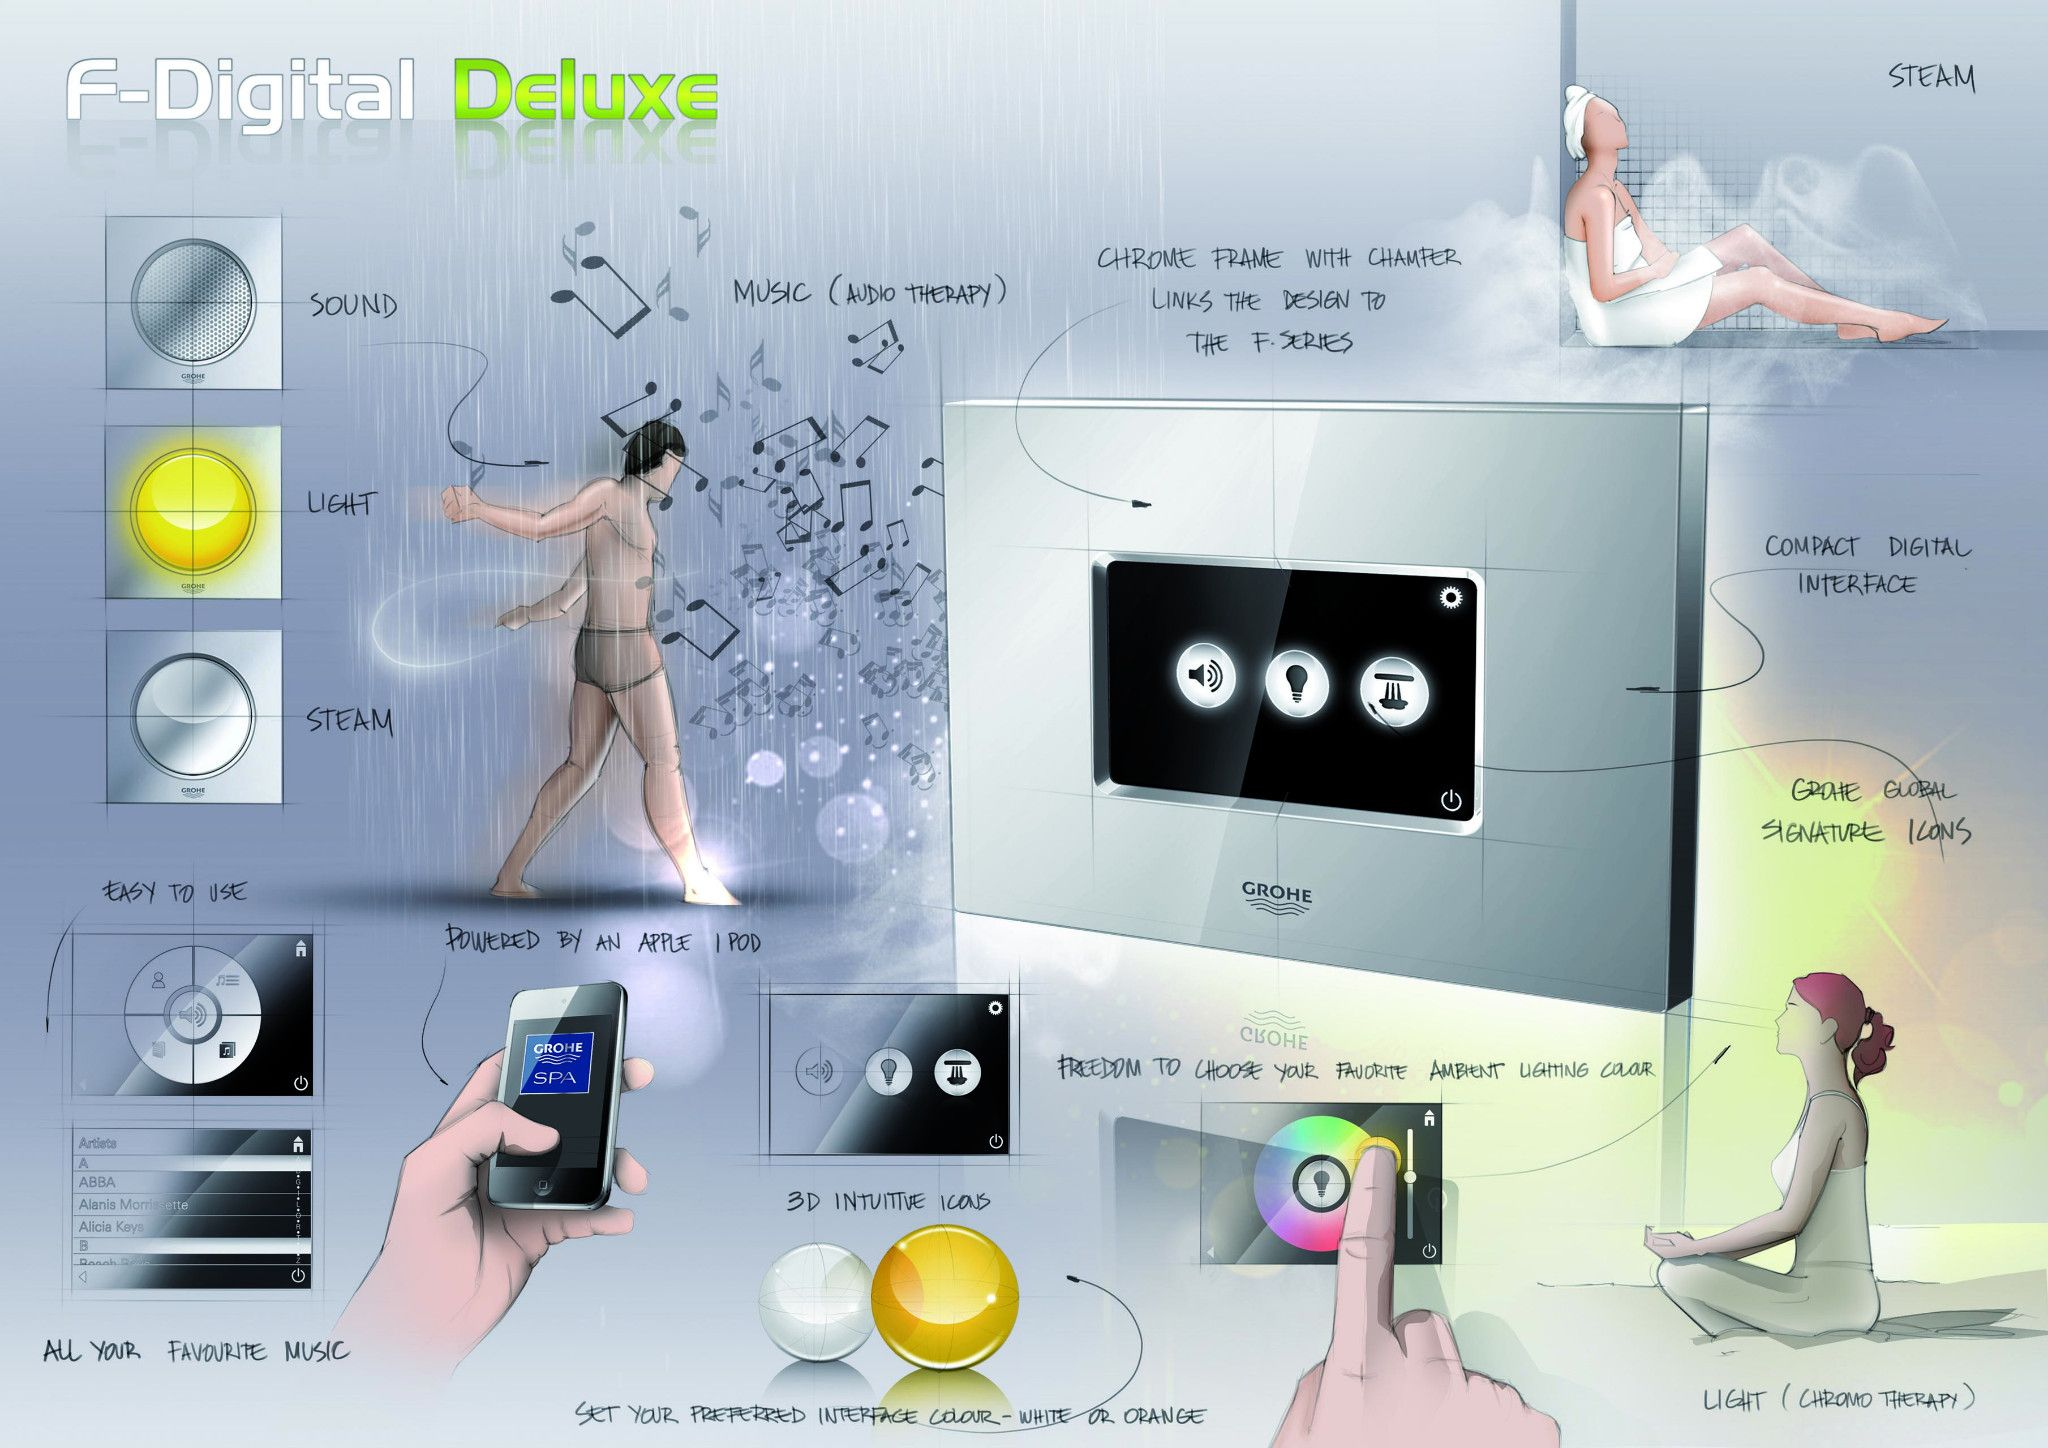 Grohe F-digital Deluxe : Most sophisticated shower system ever ...